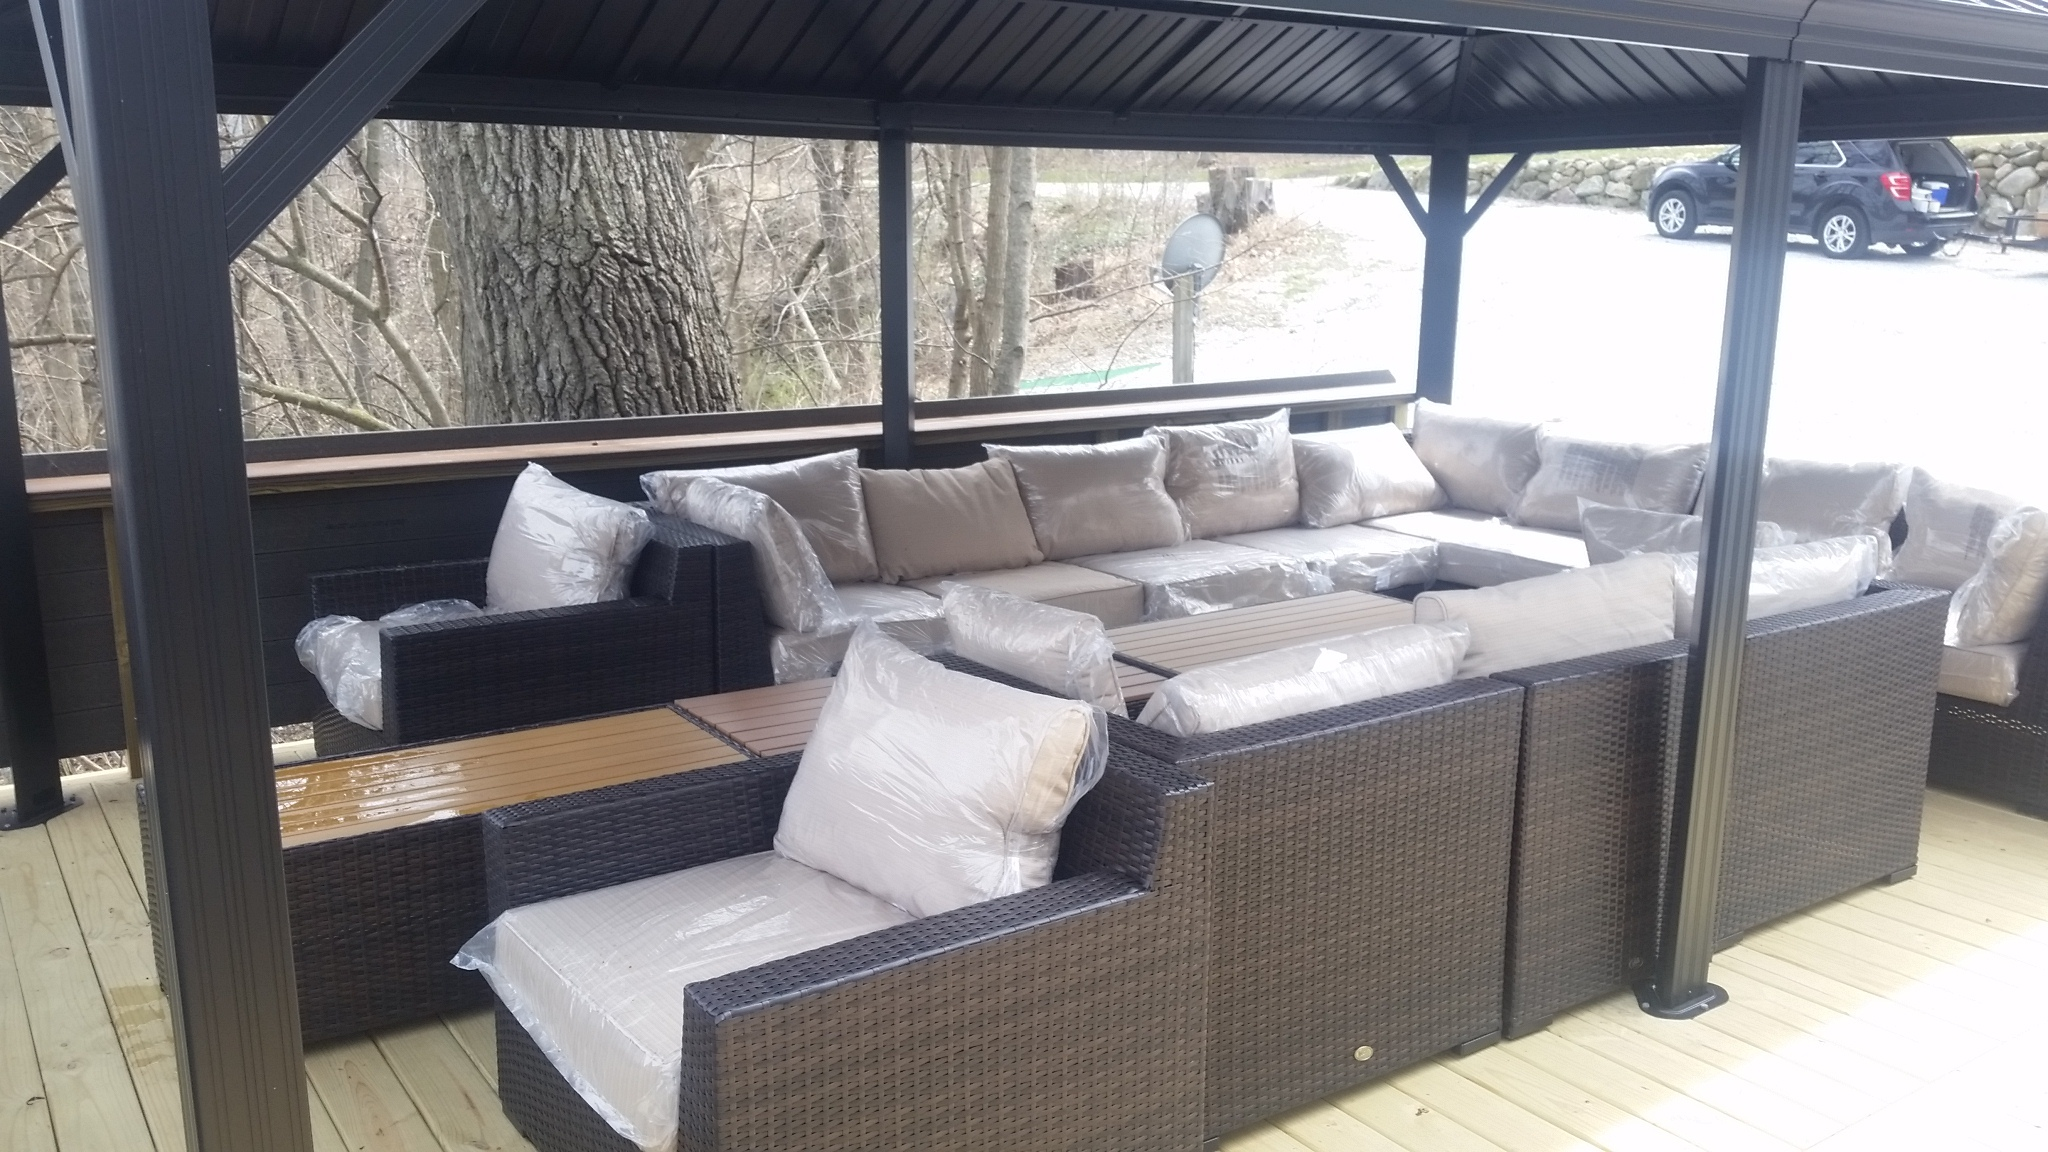 New comfortable outdoor sofas under the 12x20' gazebo. Seats 14+ friends and family.